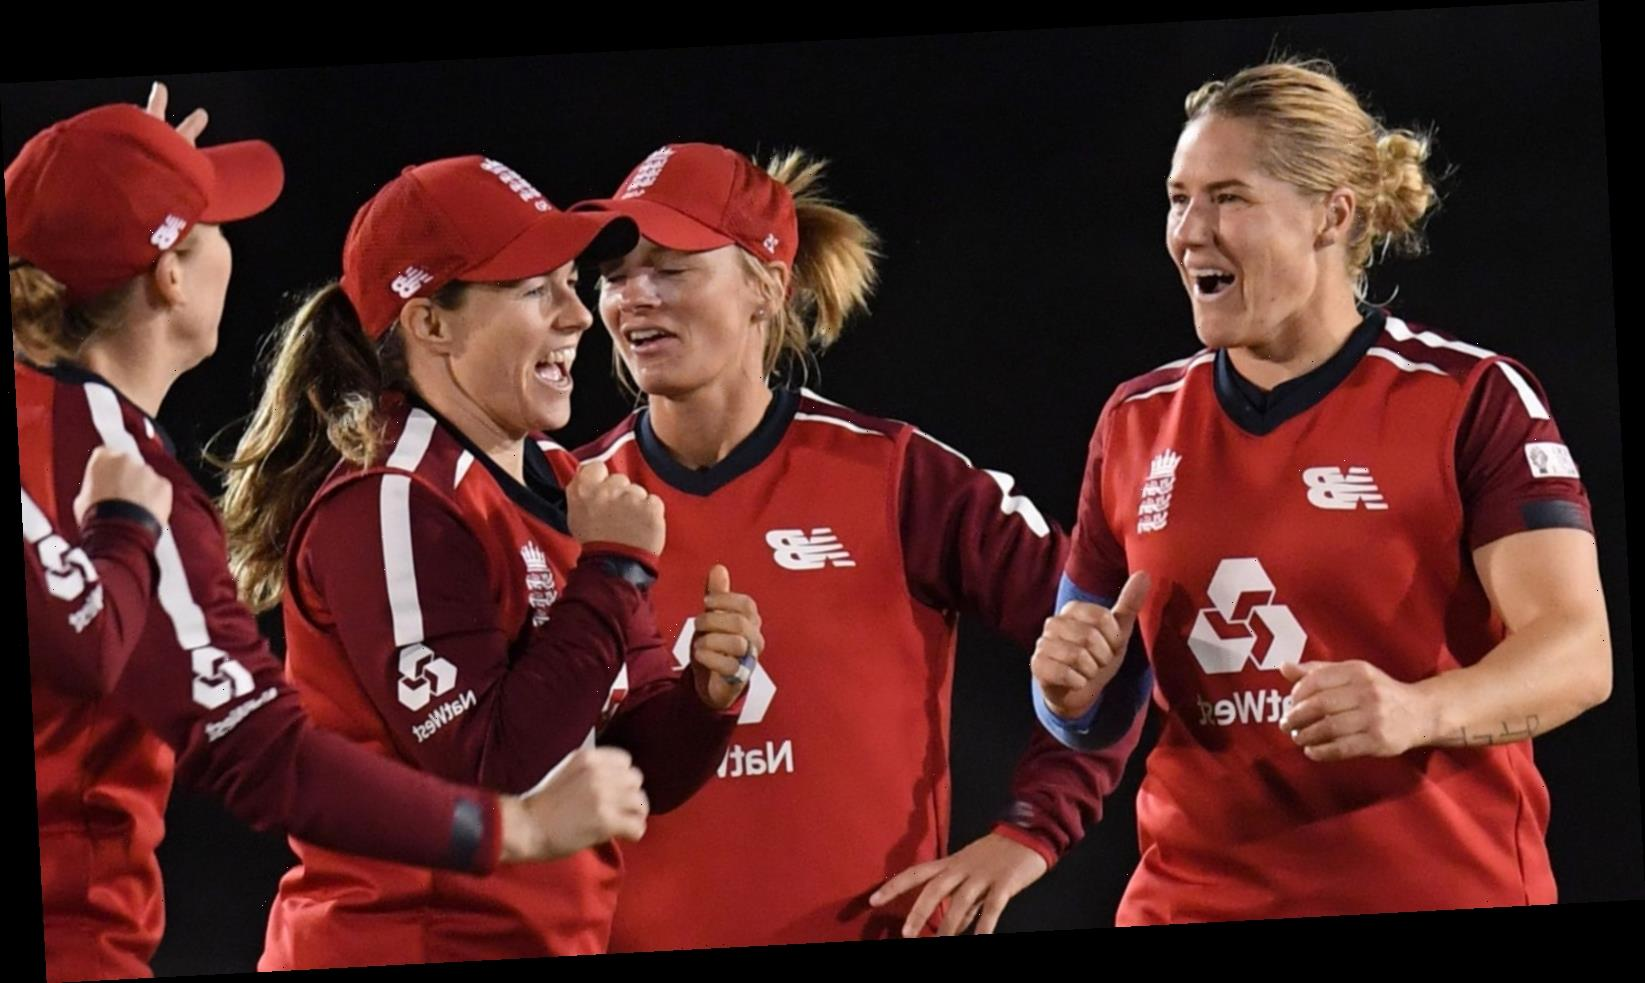 Women's cricket roars back after COVID-19 stalls T20 World Cup momentum to set up stellar 2021/22